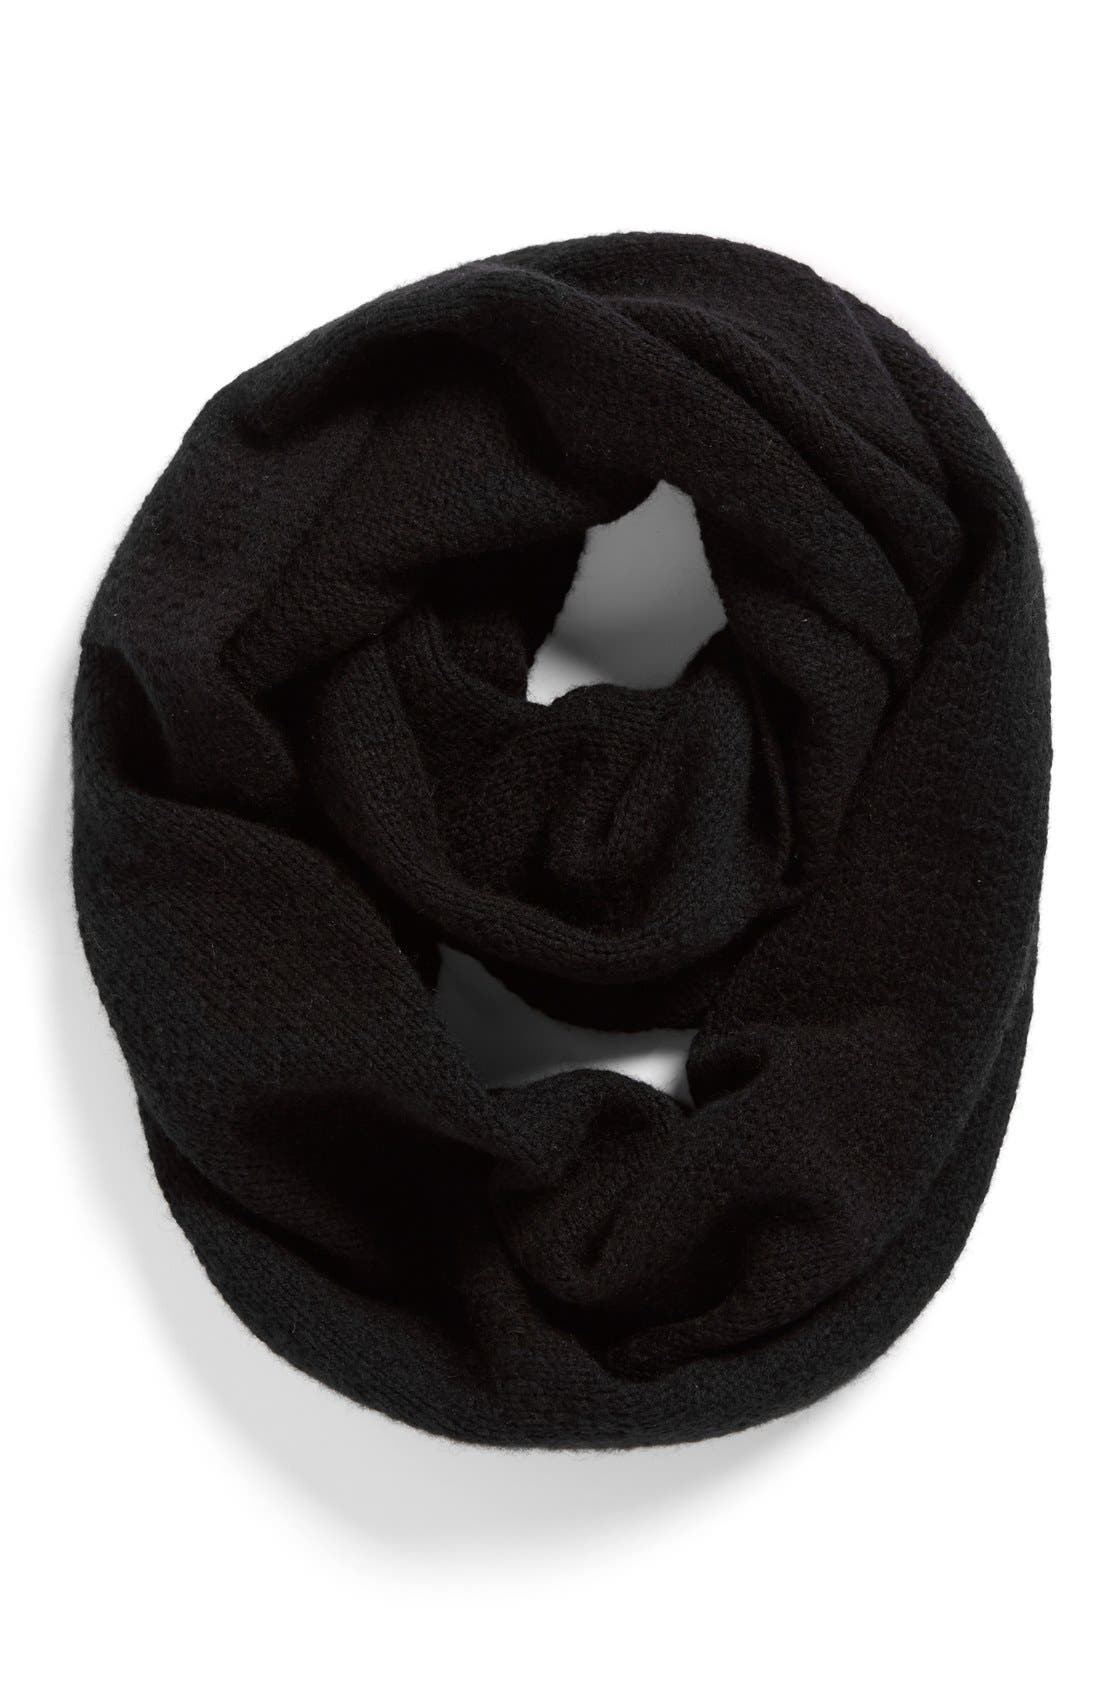 Pointelle Knit Wool & Cashmere Infinity Scarf,                             Main thumbnail 1, color,                             001